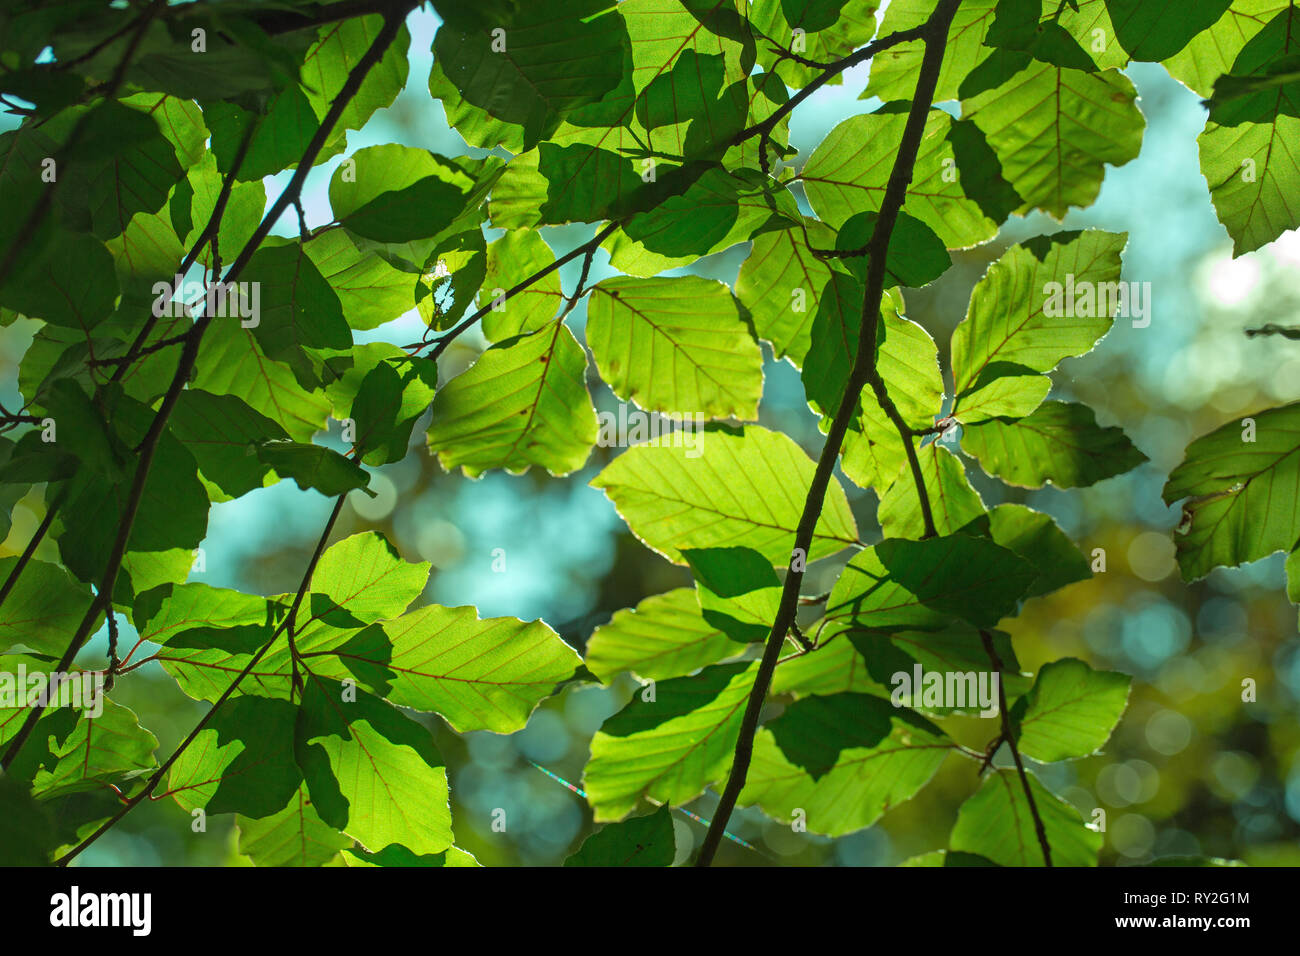 Beech Tree (Fagus sylvatica). leaves. Mosaic of foliage and branches. Looking up, against the sunlight. Contre jour lighting. Showing individual and overlapping leaves. Stock Photo